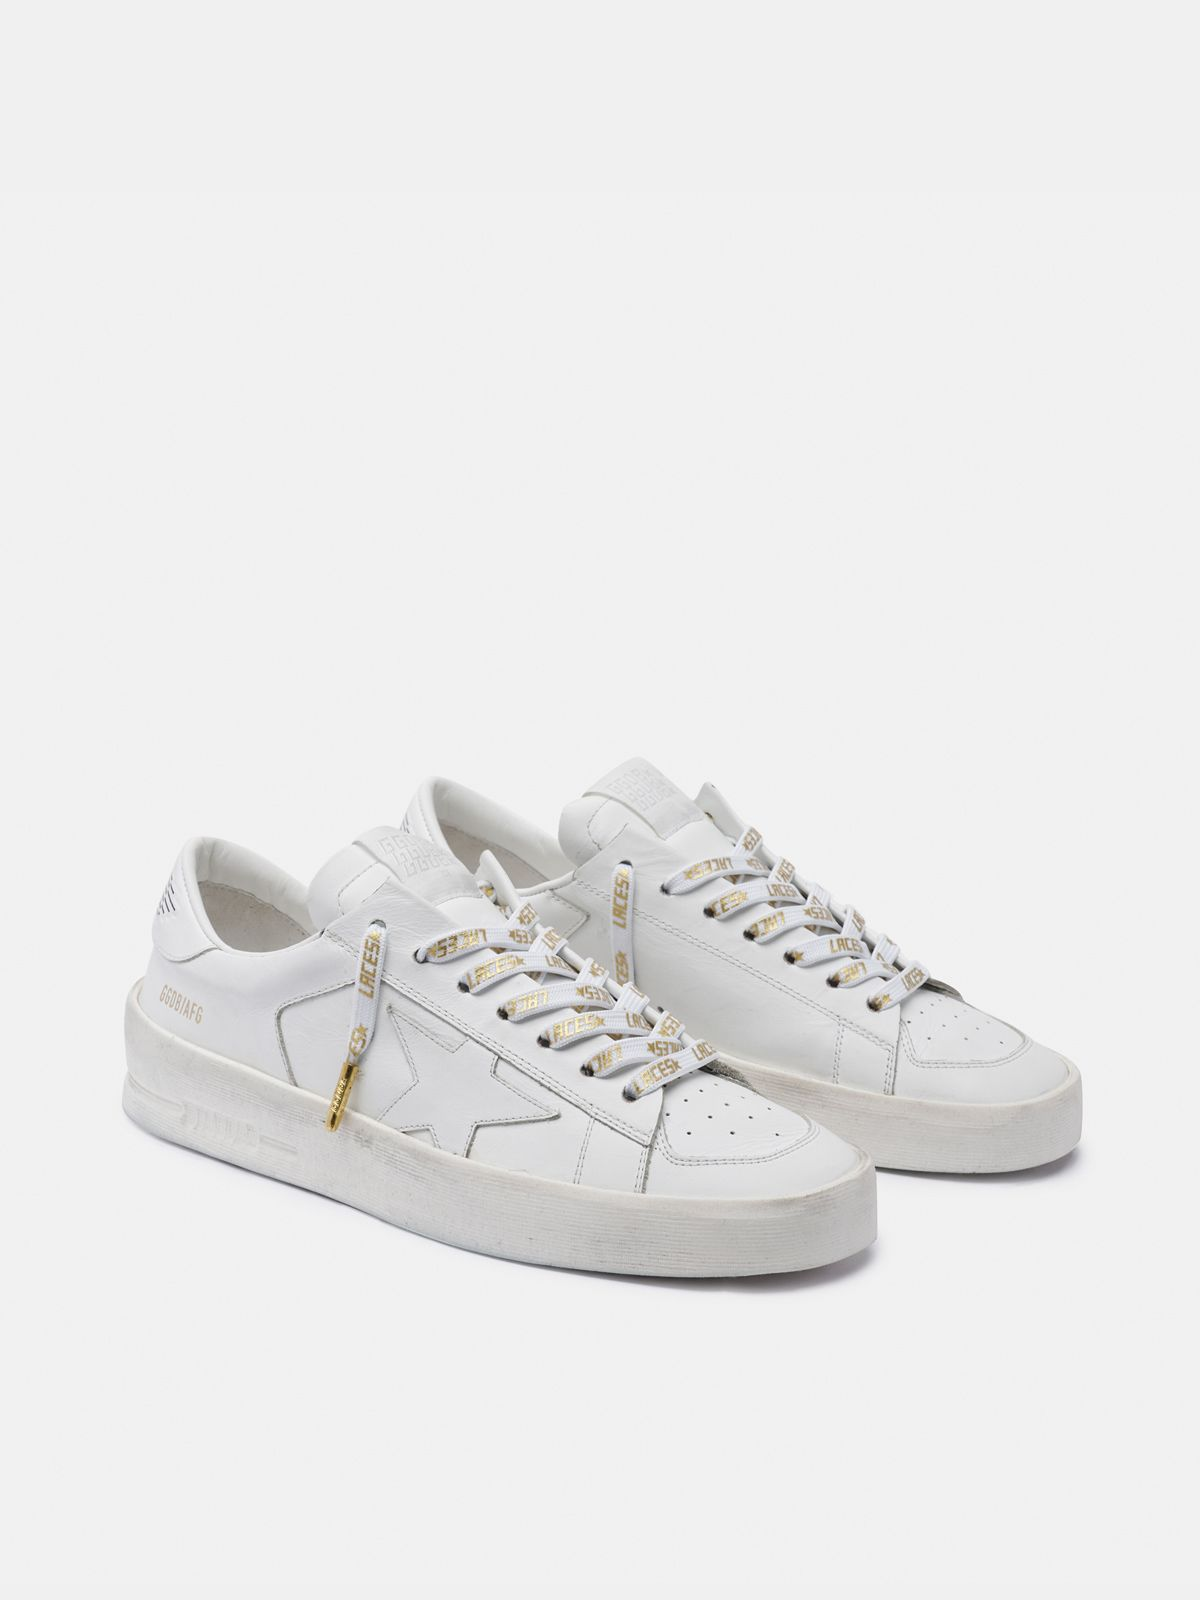 Golden Goose - Women's white laces with gold laces print in